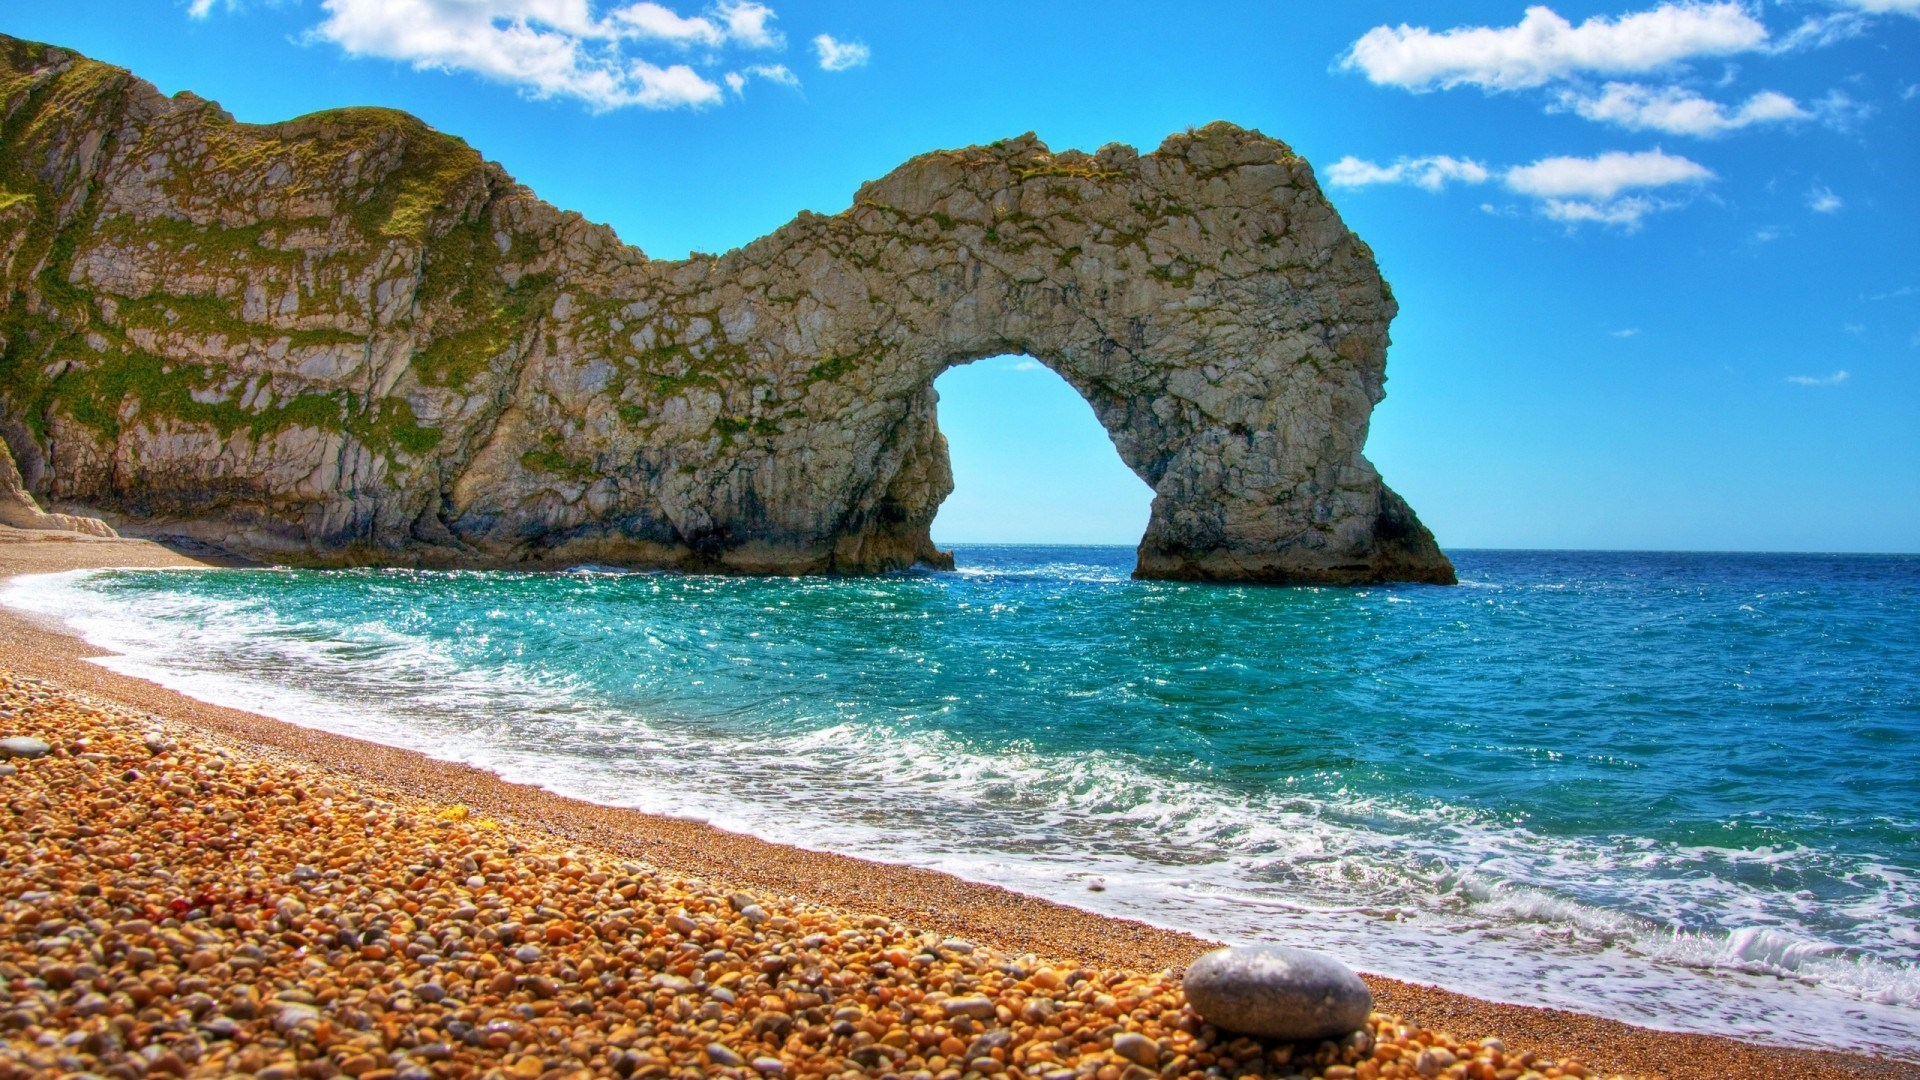 Nature Beach Summer Spain Durdle Door Wallpaper 1920x1080